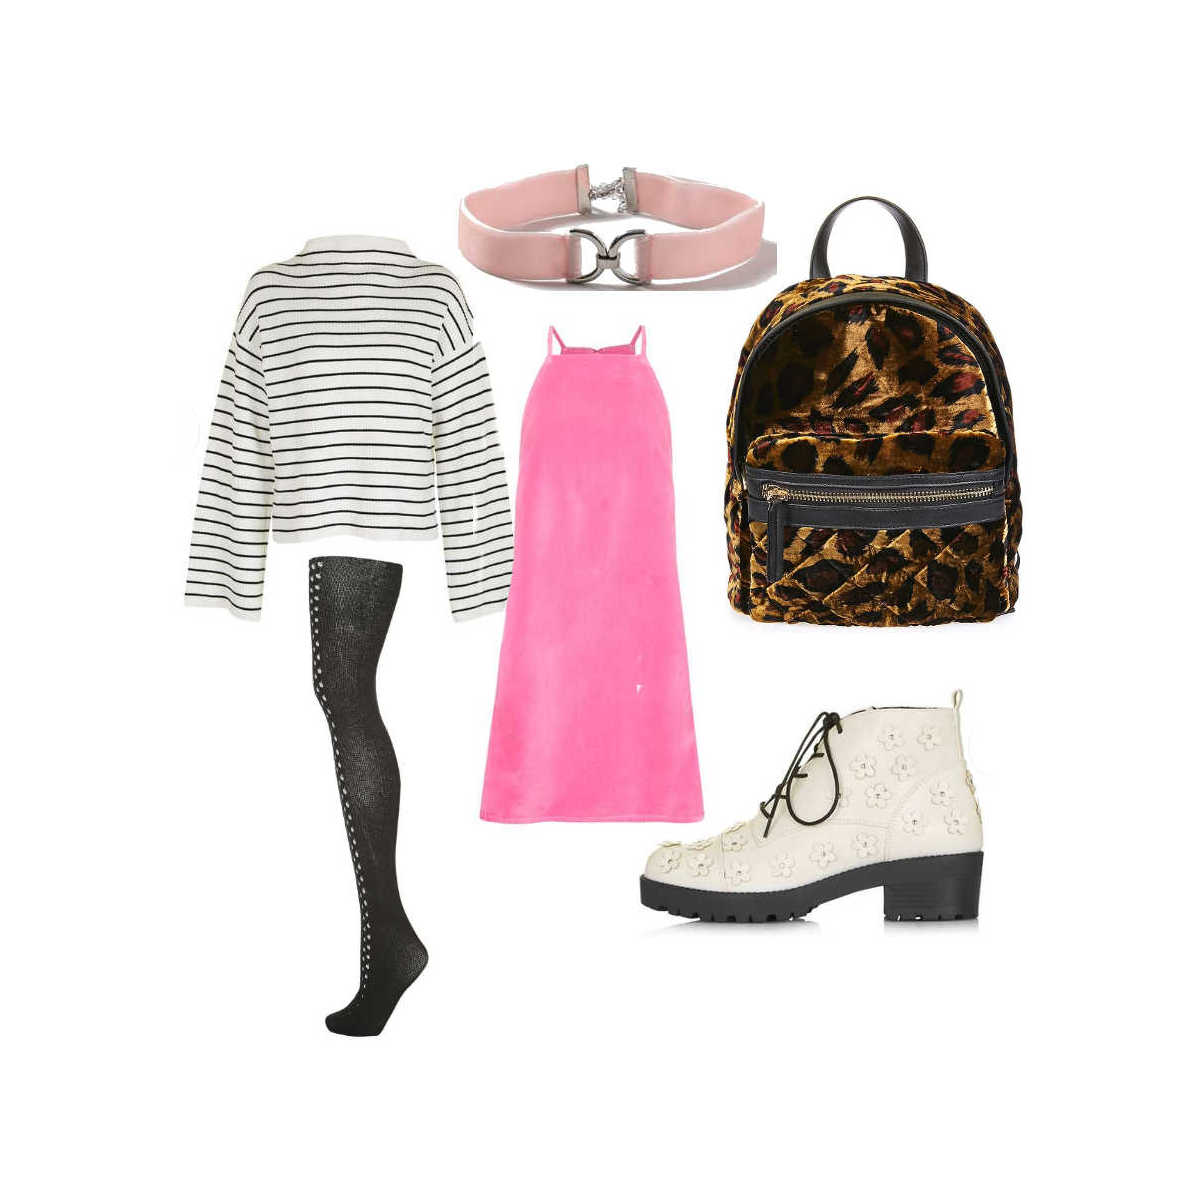 autumn winter outfit inspiration, autumn winter outfit flatlays, winter pinafore slip dress over jumper outfit, leopard print velvet backpack, 90s grunge winter outfit 1